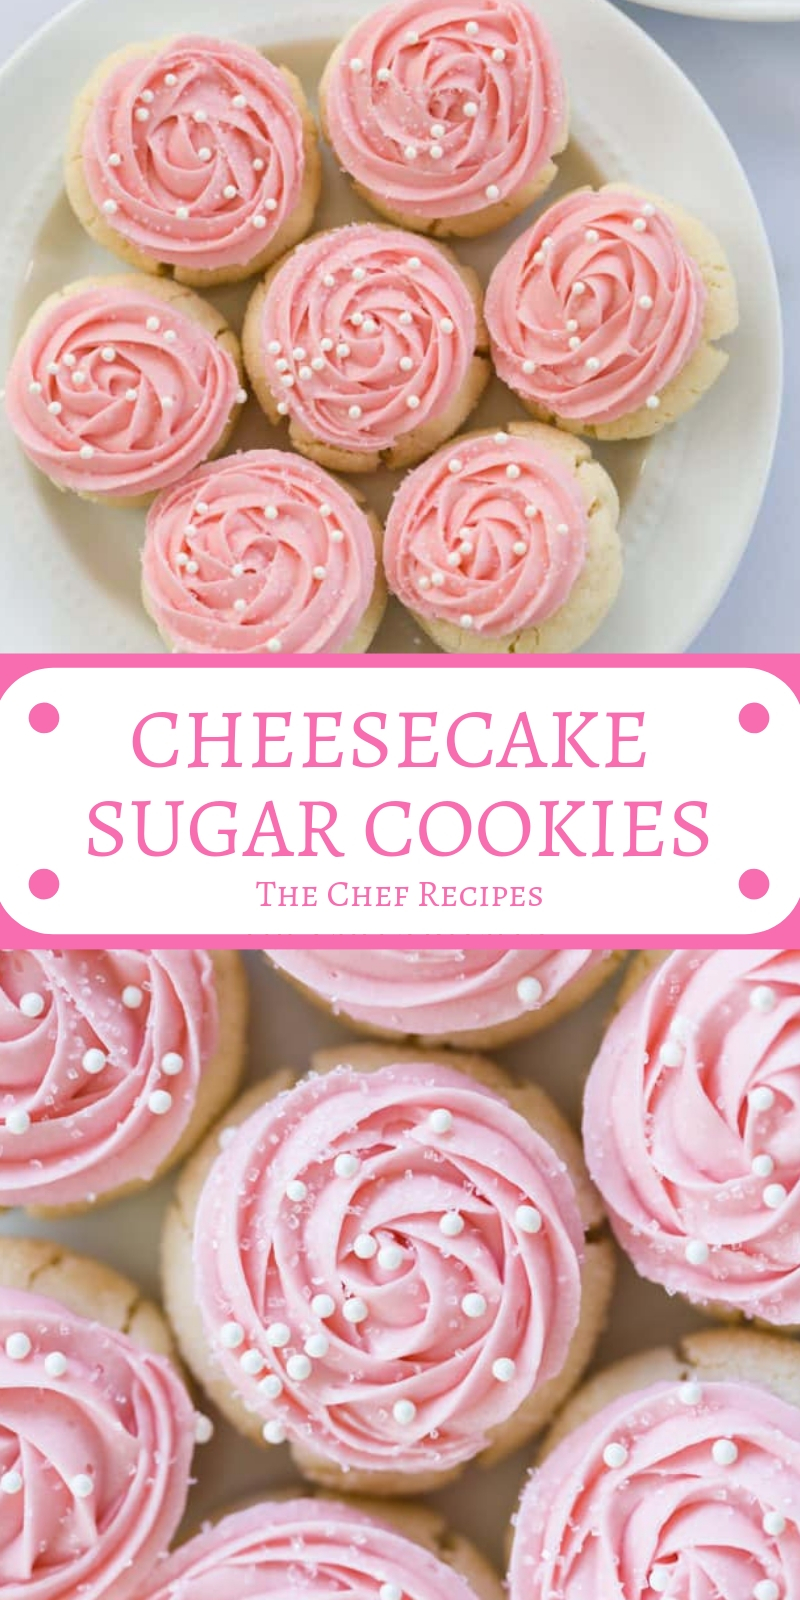 CHEESECAKE SUGAR COOKIES